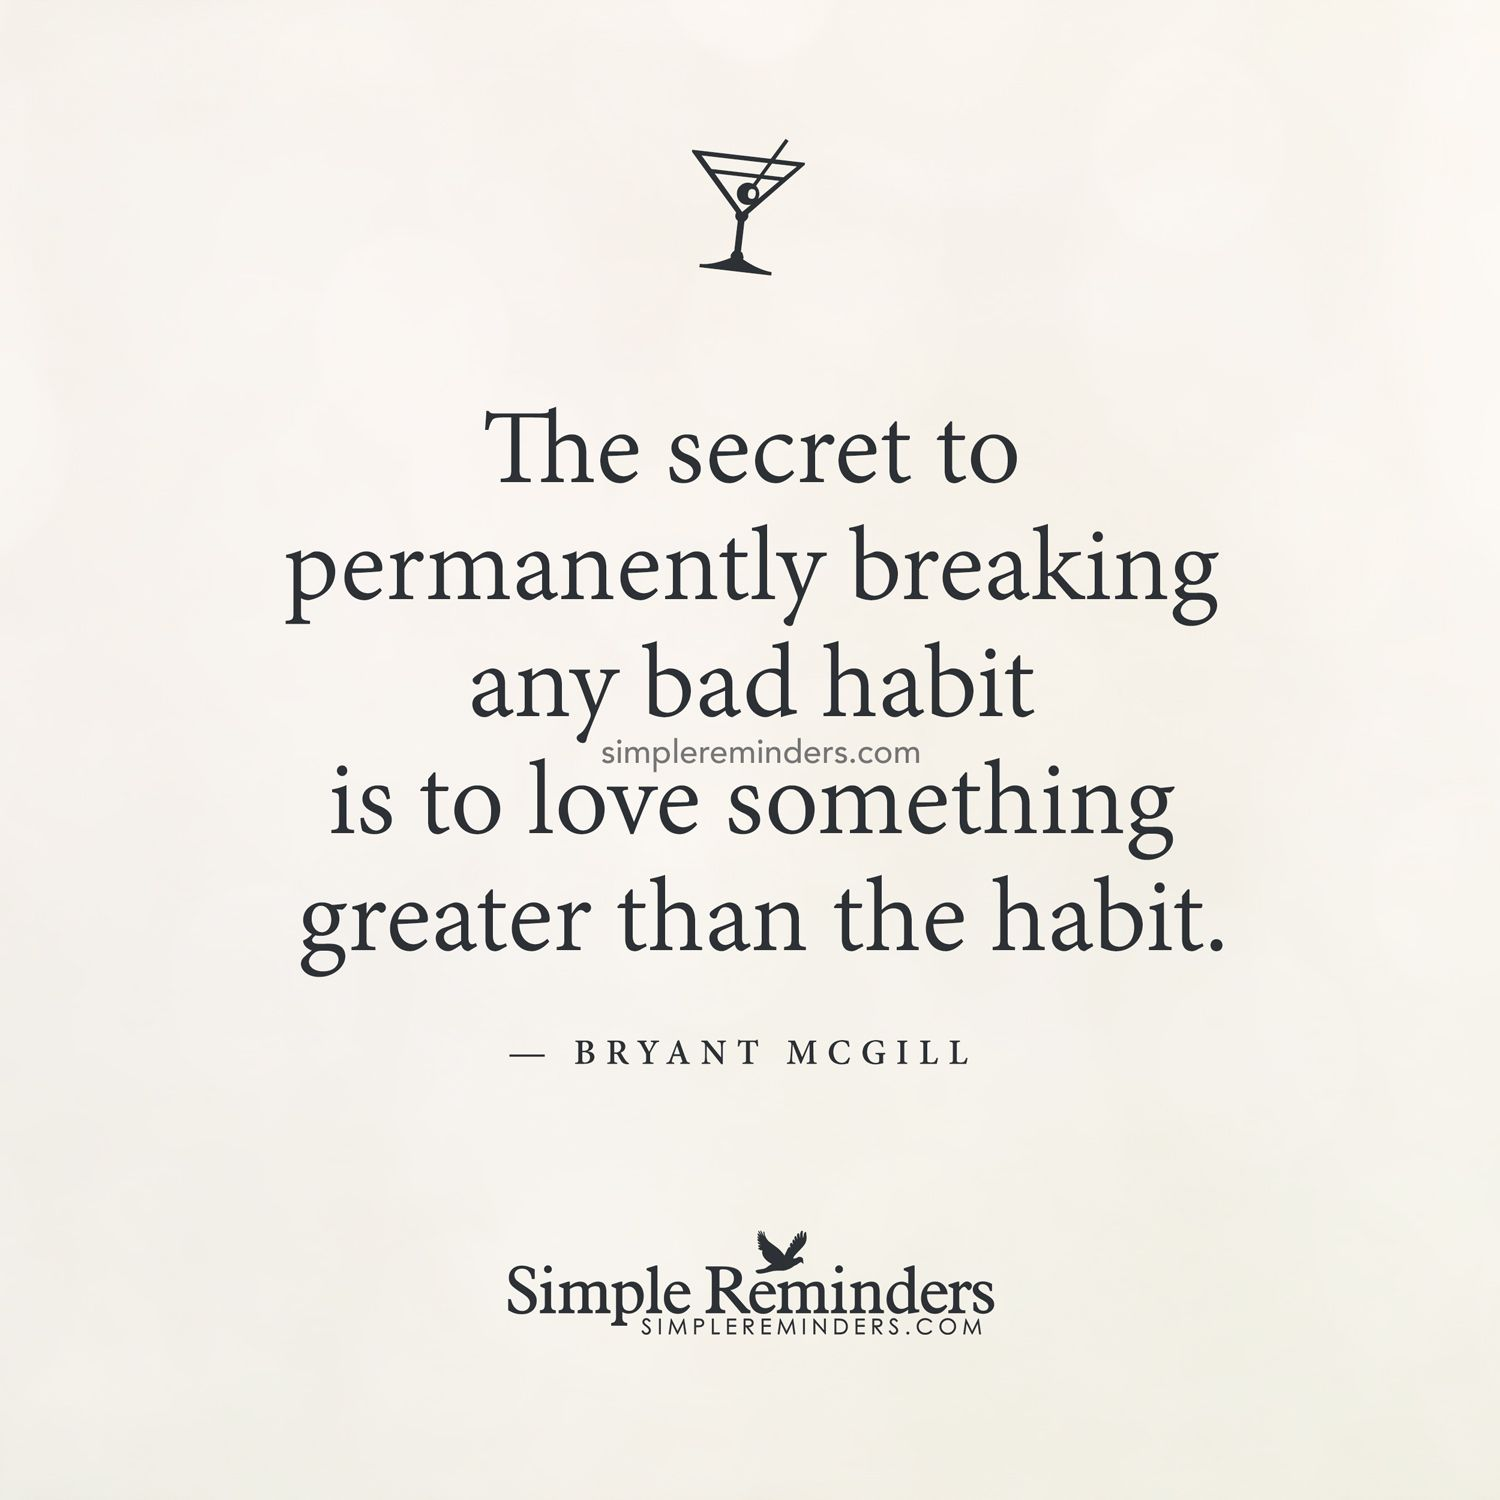 The Secret To Permanently Breaking Any Bad Habit Is To